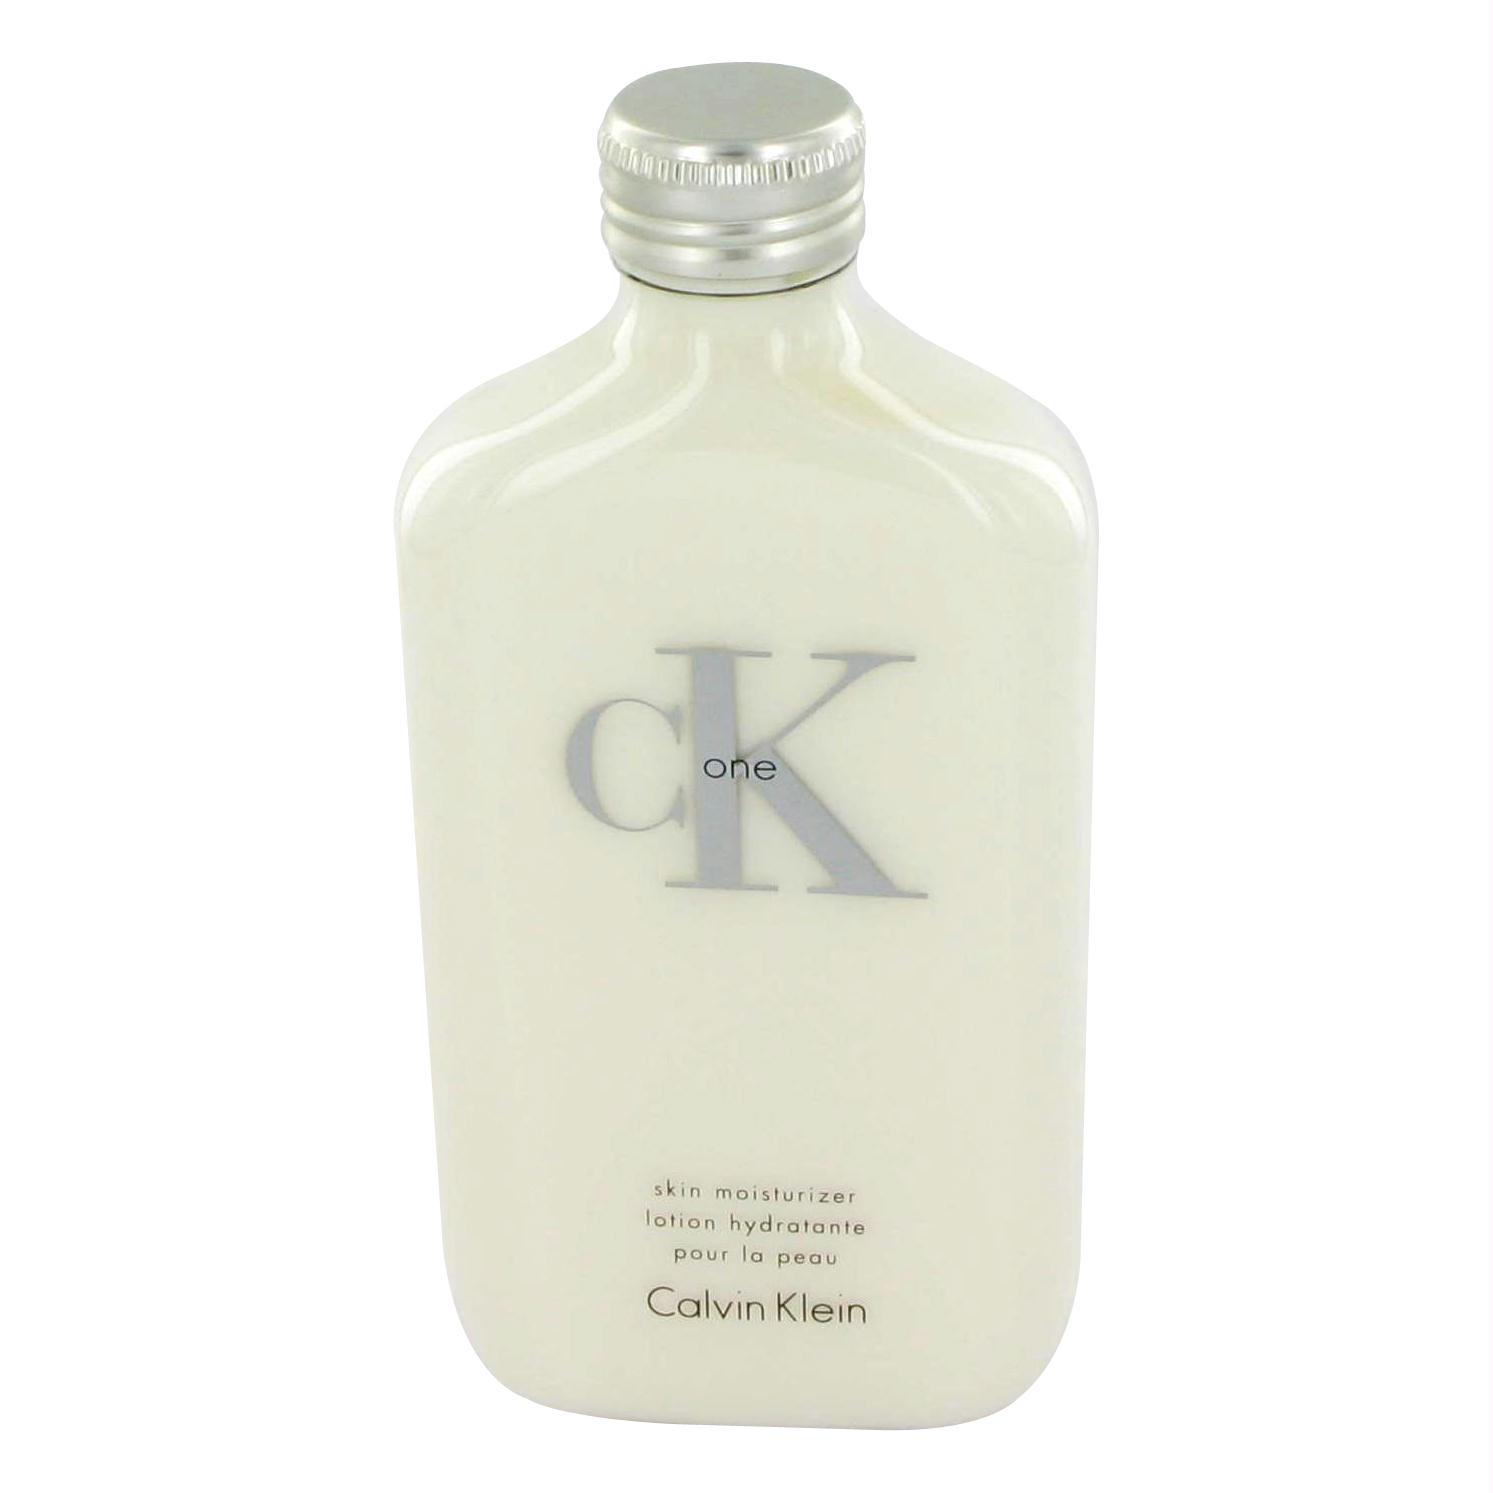 Calvin Klein 400508 CK ONE by Calvin Klein Body Lotion 8.5 oz